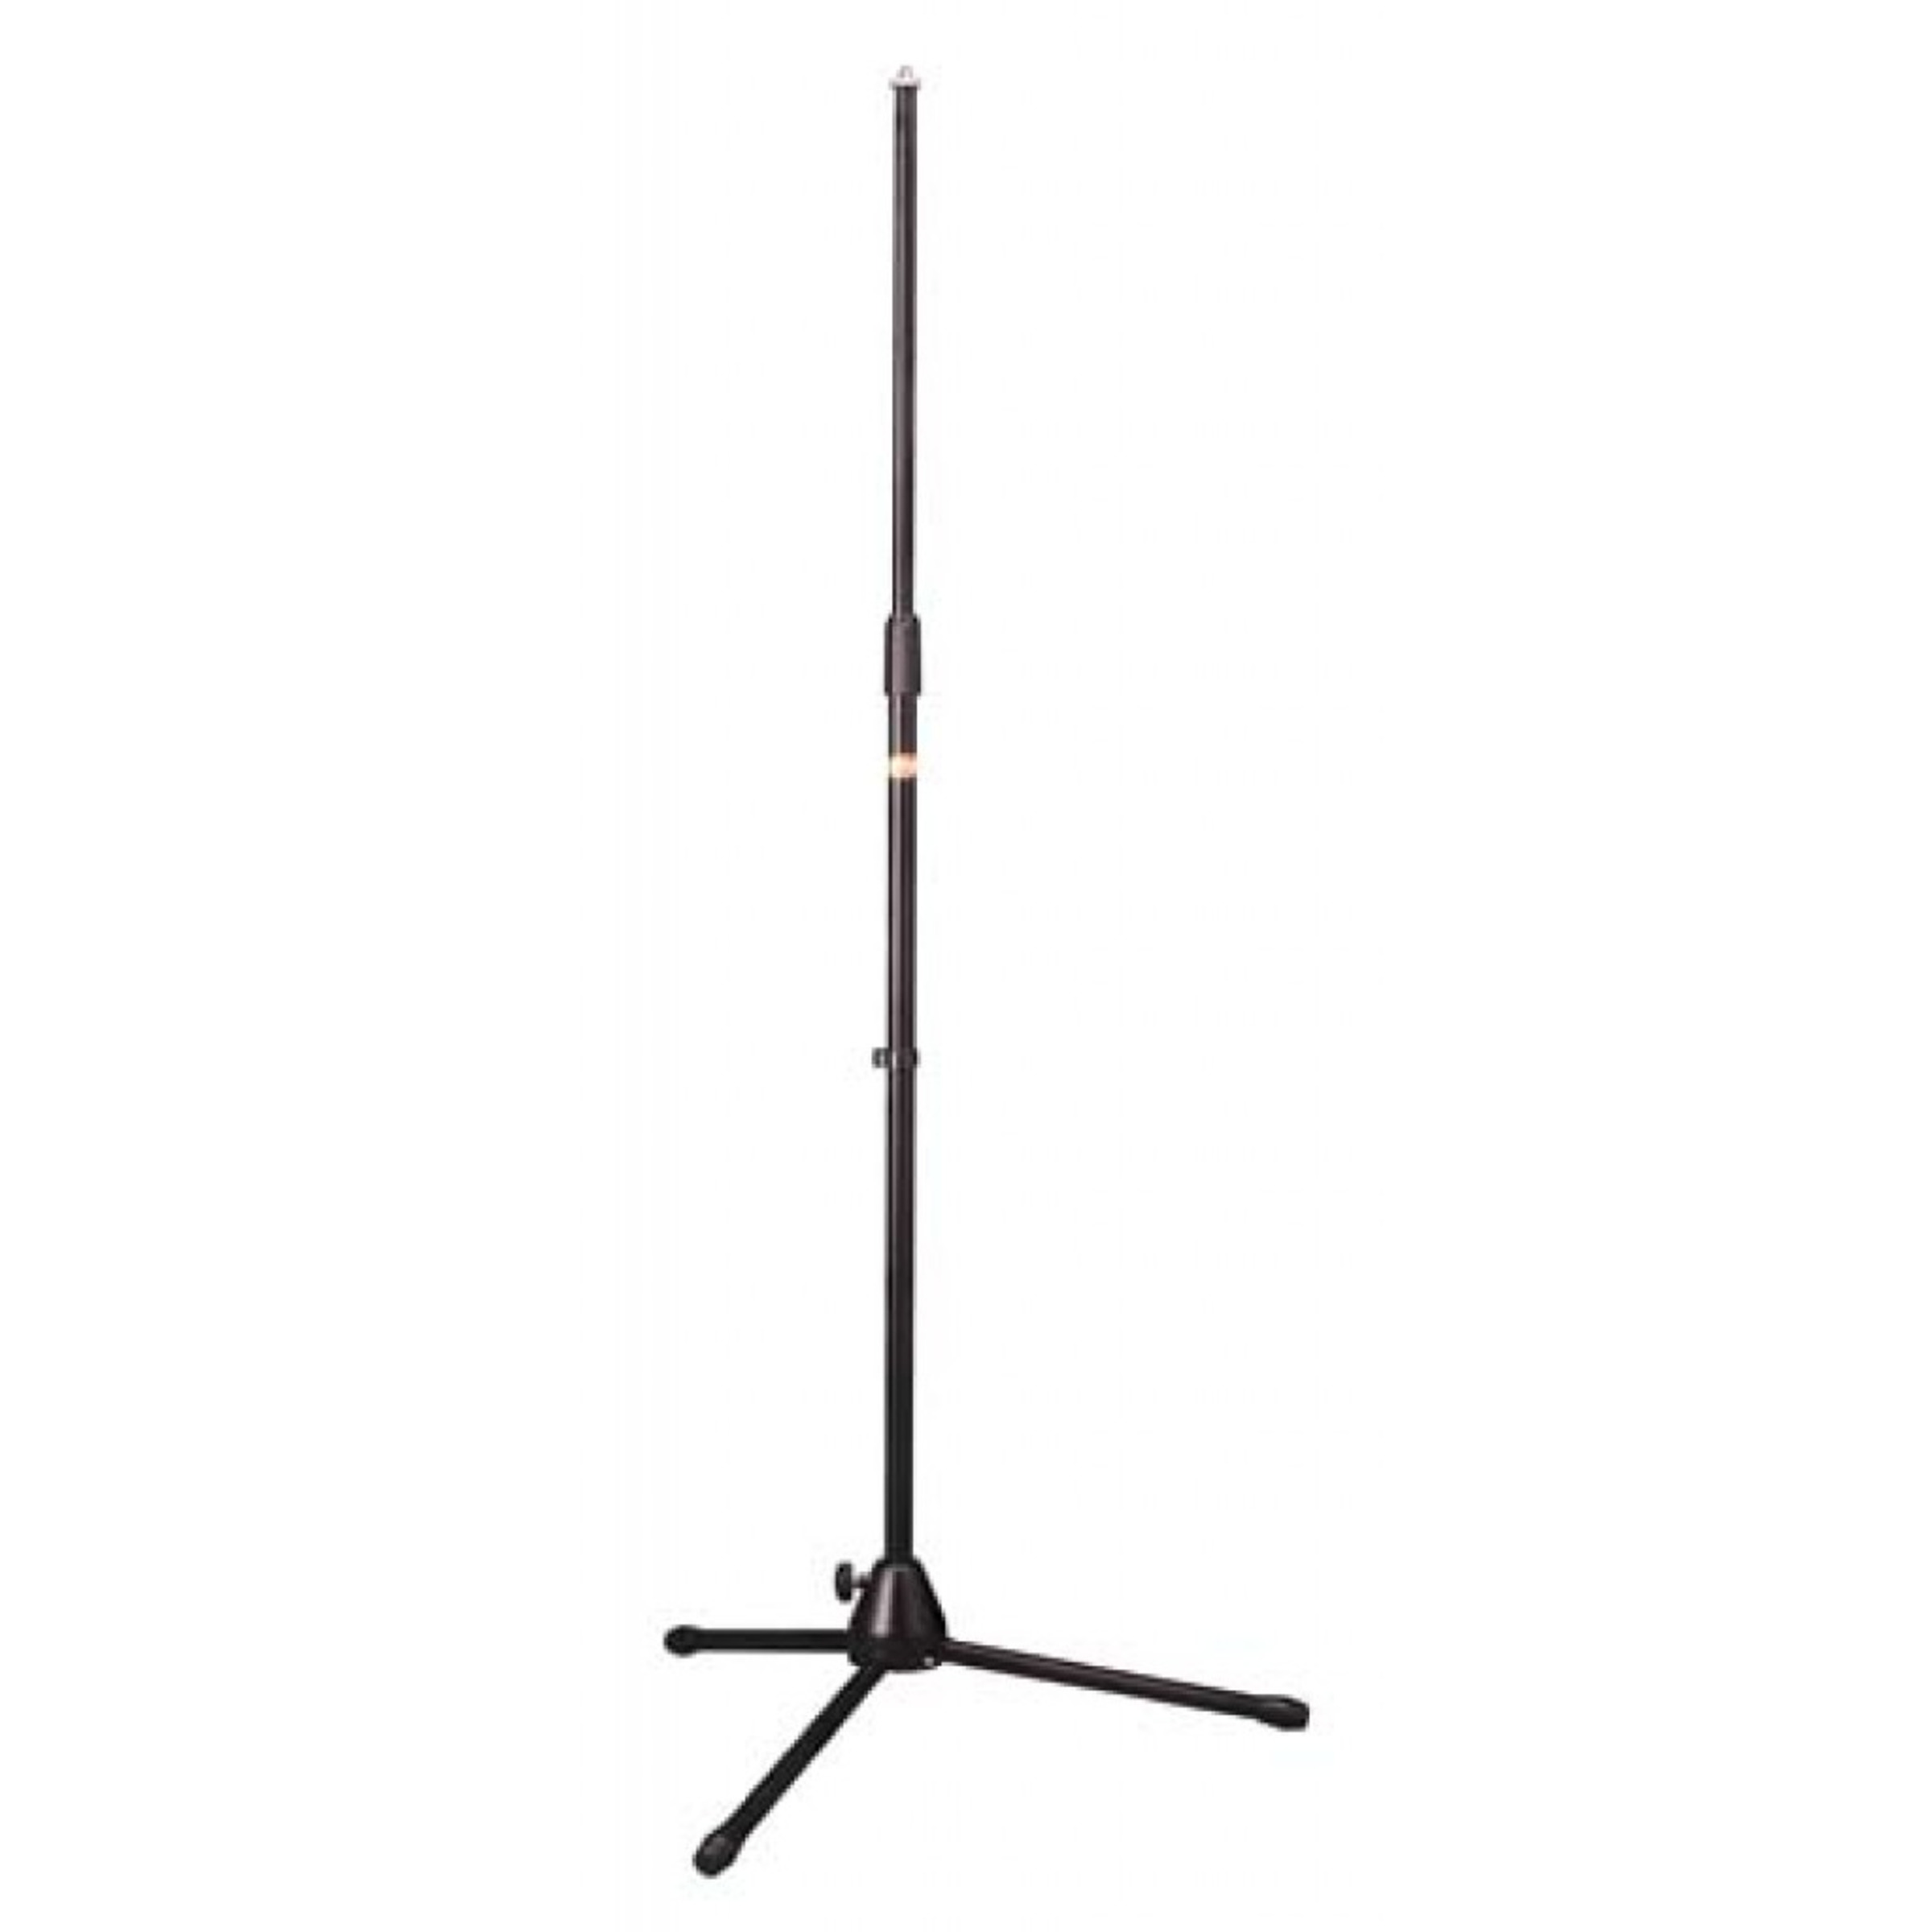 stagg microphone stand tripod base straight giggear. Black Bedroom Furniture Sets. Home Design Ideas